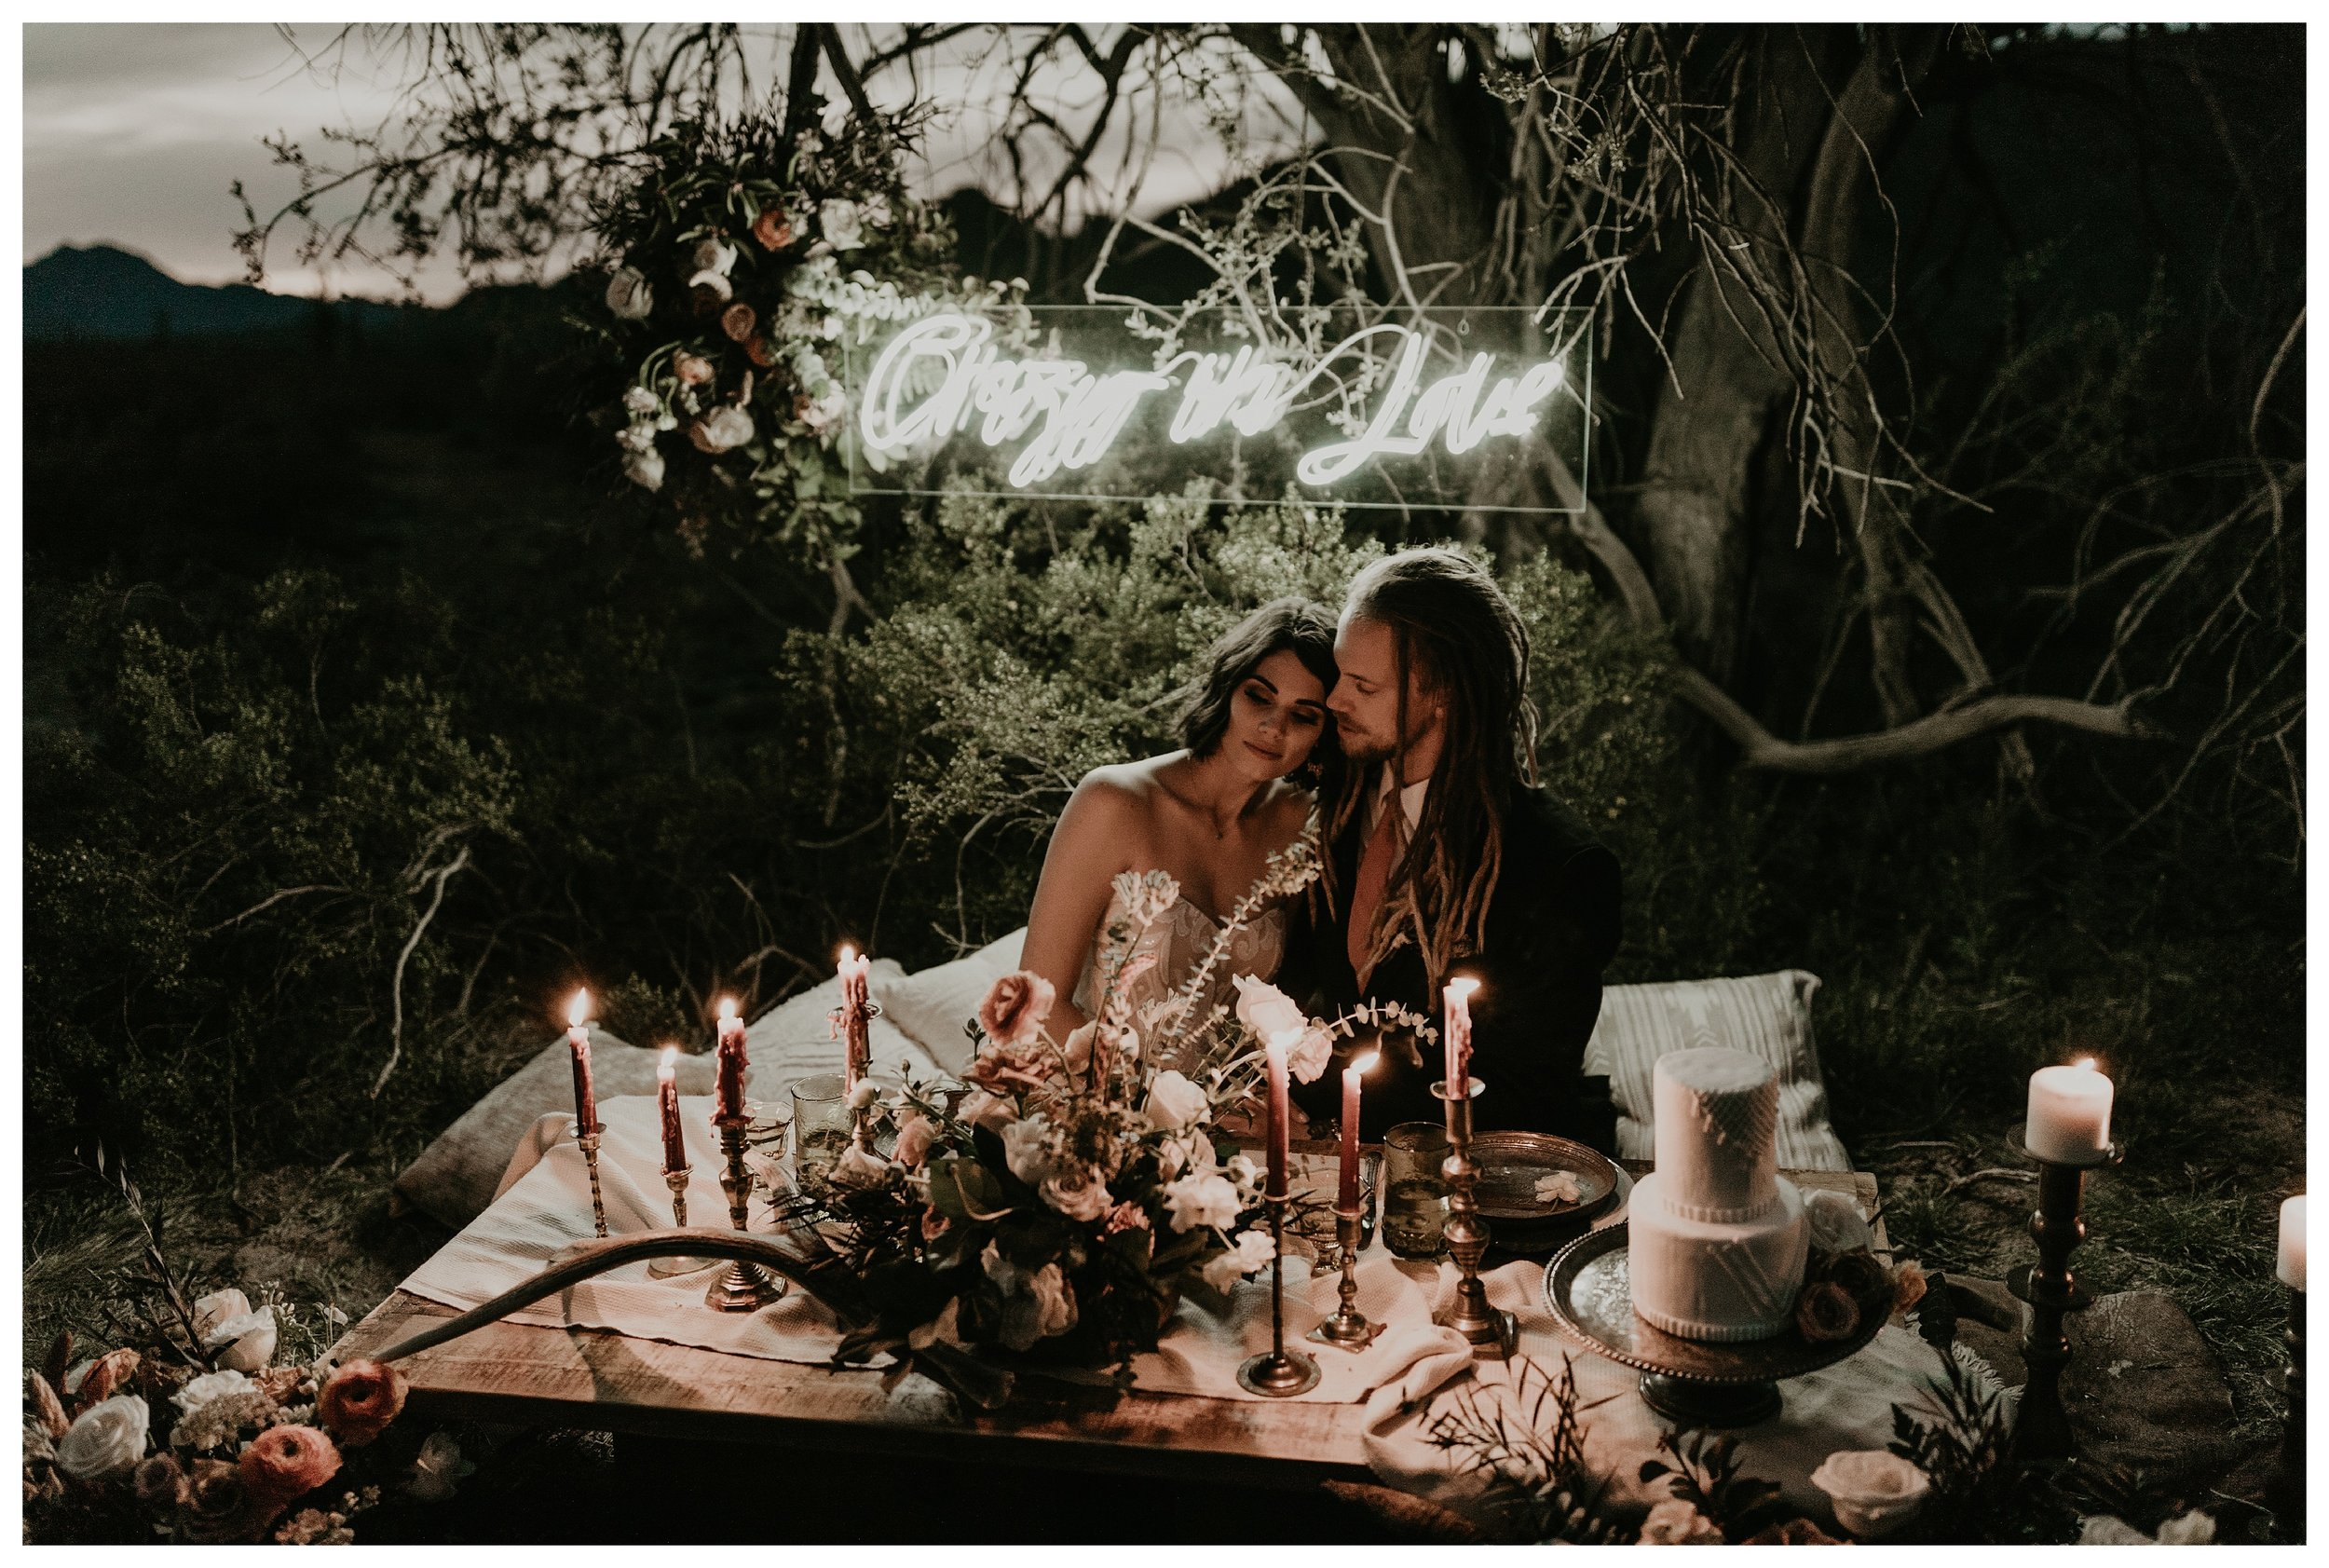 edgy bohemian desert elopement sweetheart inspiration with a neon sign and candles